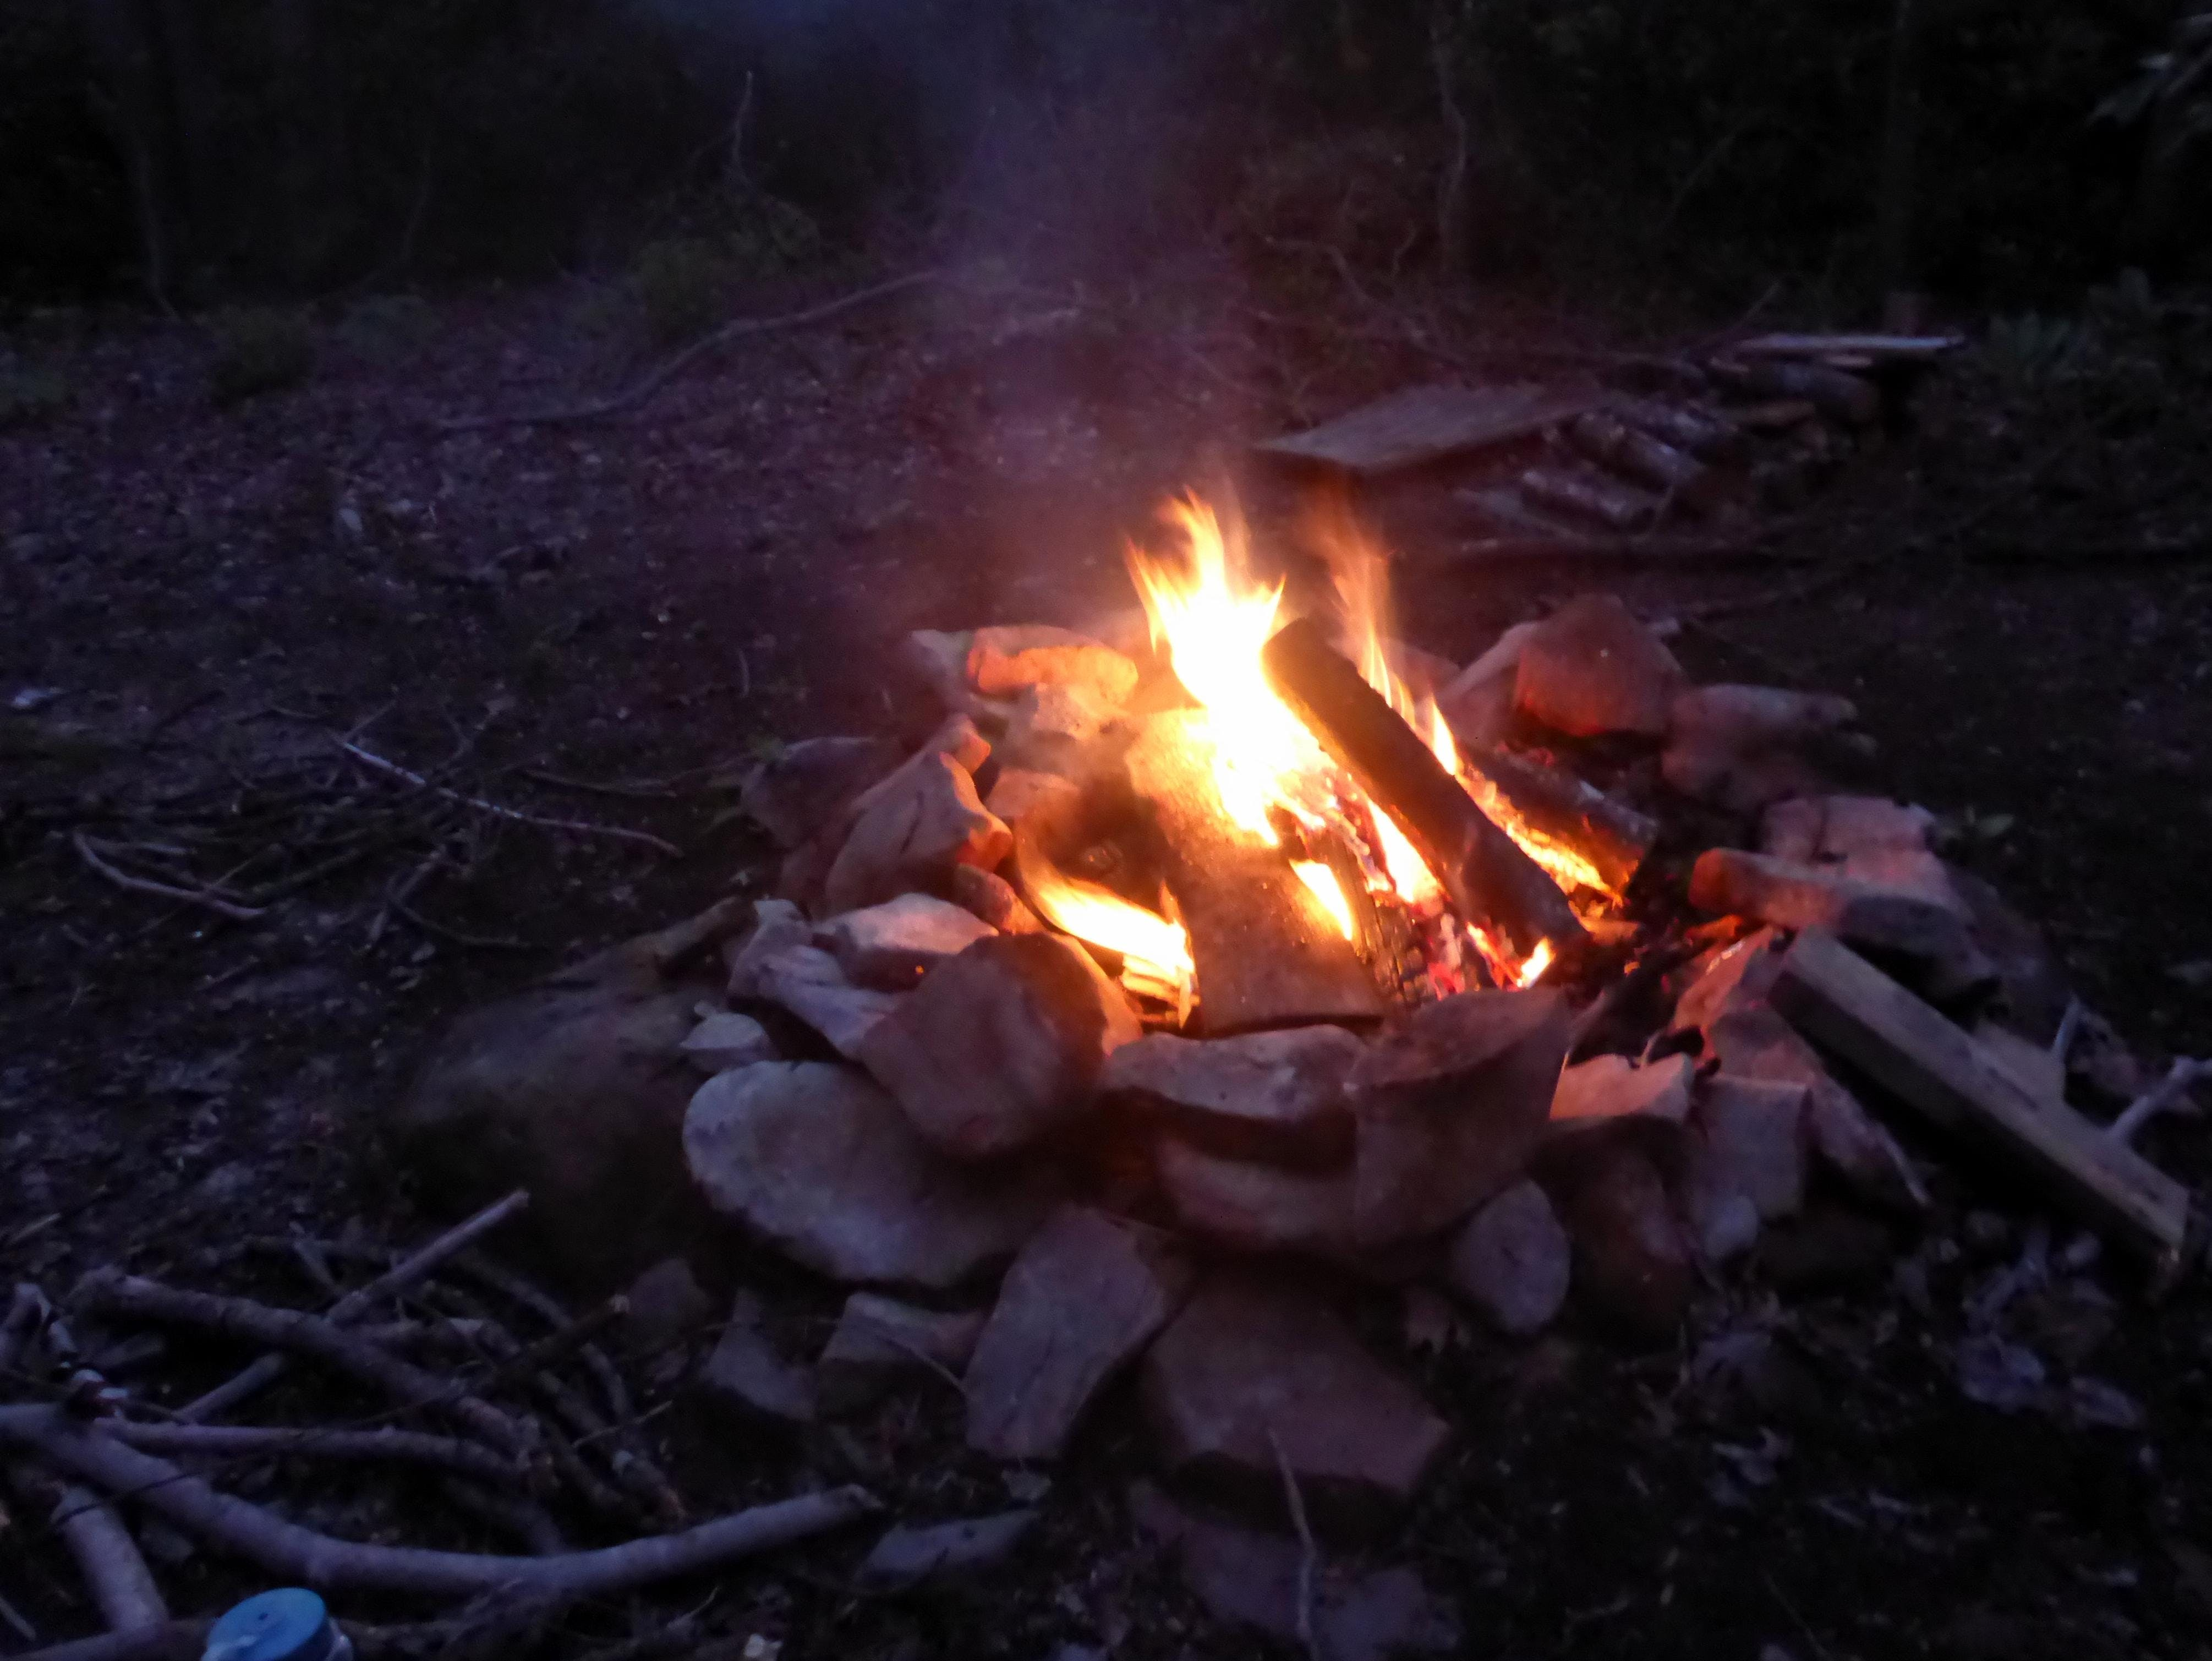 How To Build a Fire and Cook Over It